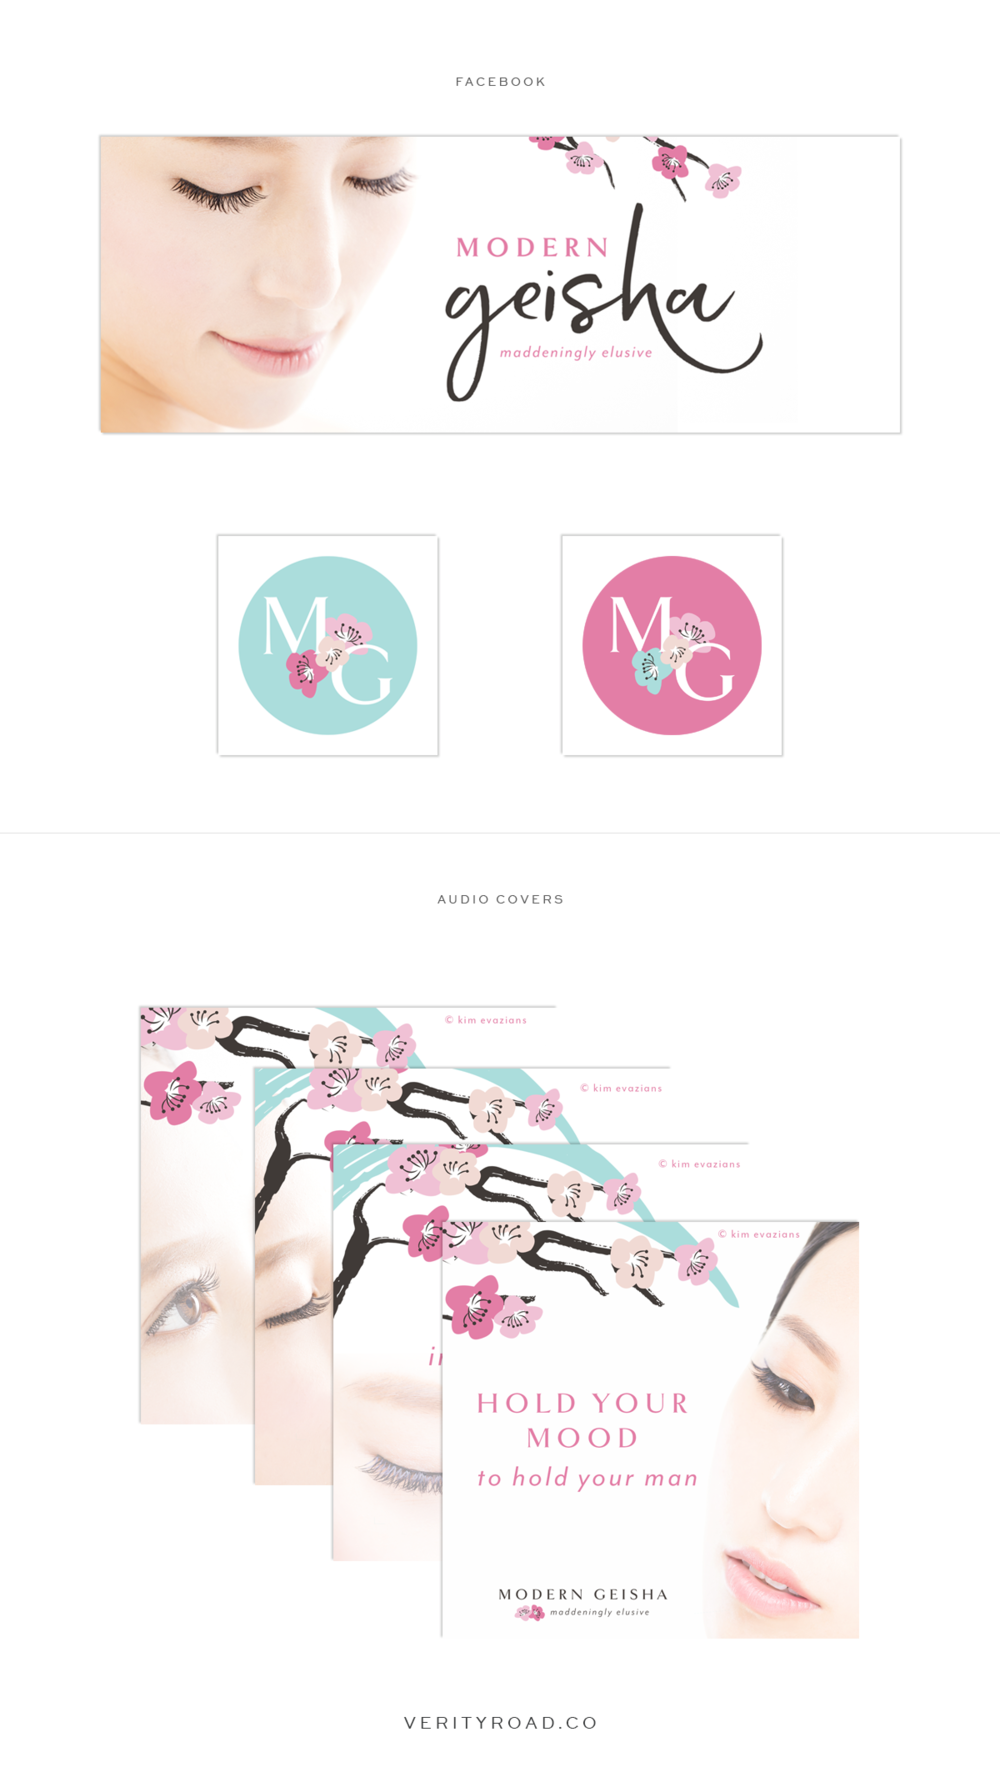 social media branding for Modern Geisha, luxury brand styling and web design for female entrepreneurs. feminine branding, luxury branding, feminine business. Inspiration board of typography, script font, color palette, brush script font, serif, brown, pink, blush, tiffany blue color palette, femininity, FLORAL pattern, business owner. instagram, pinterest, blog pin graphic, facebook cover. See more for brand board, brand style guide, mood board and web design.